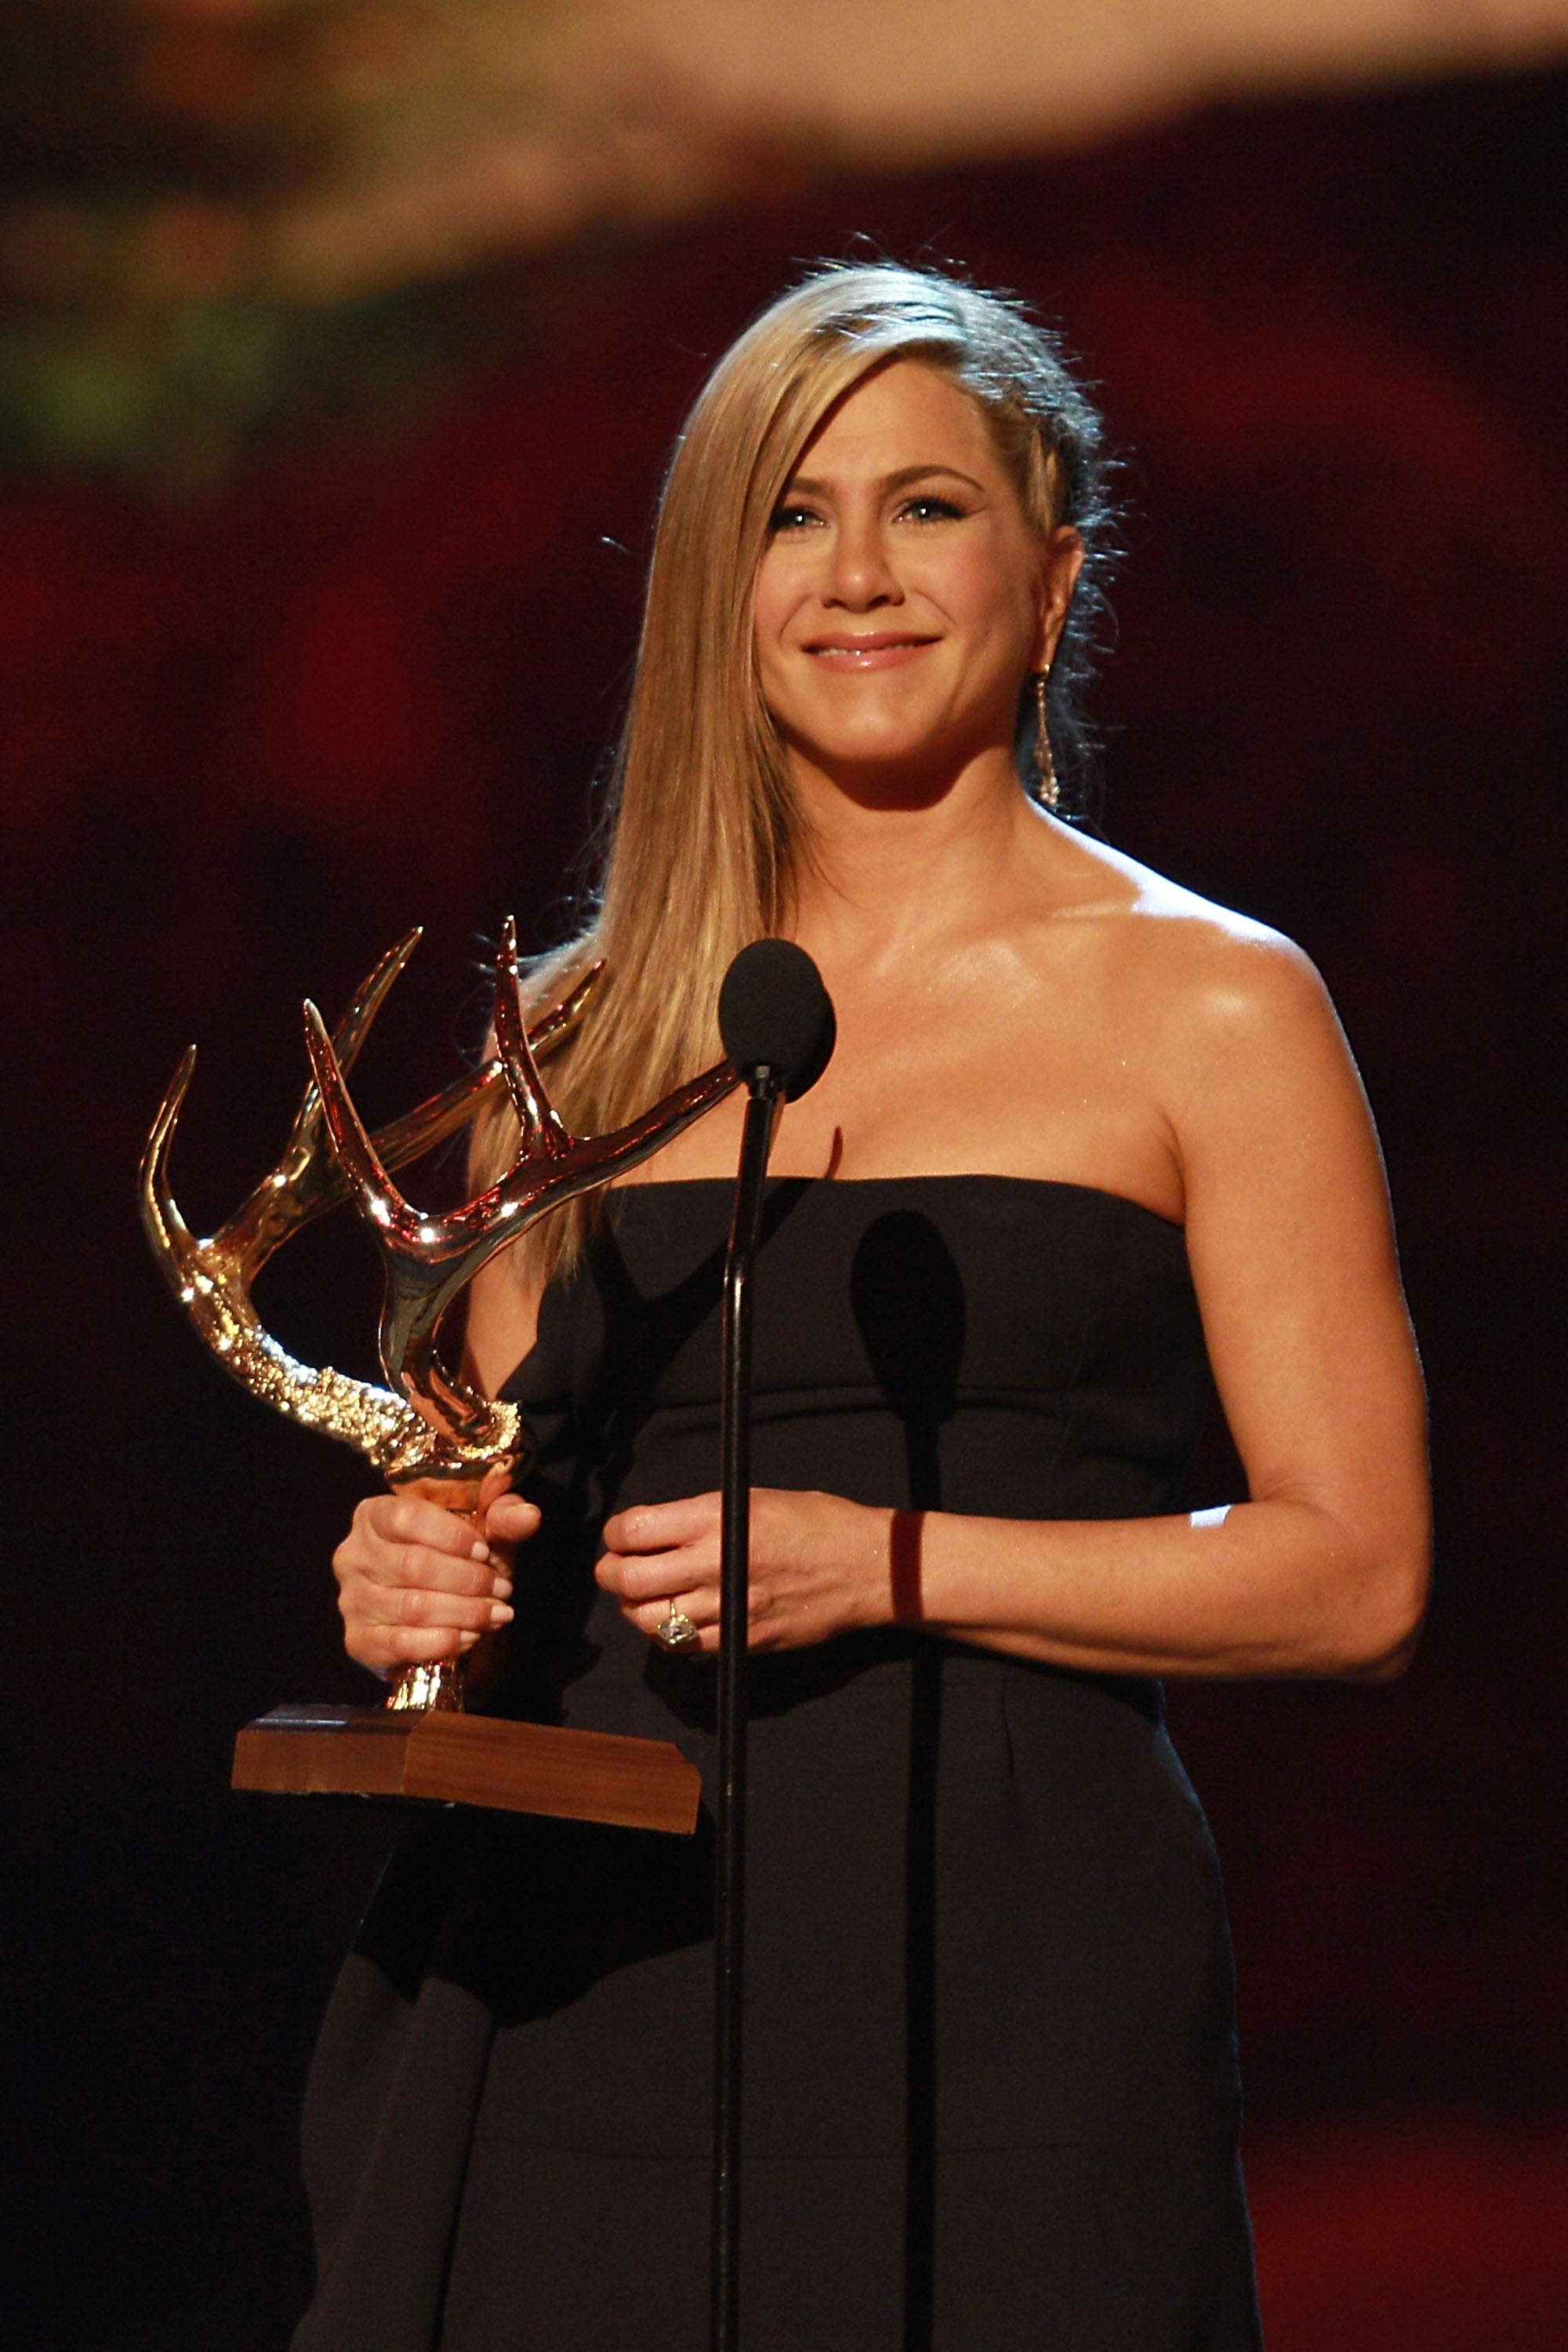 It's been a while since we've spotted Jennifer Aniston in a braid — perhaps not since her famous headband braid at 2009's Oscars — but fast-forward four years to the Guys Choice Awards, and here's Jennifer rocking a scalp-hugging side plait.